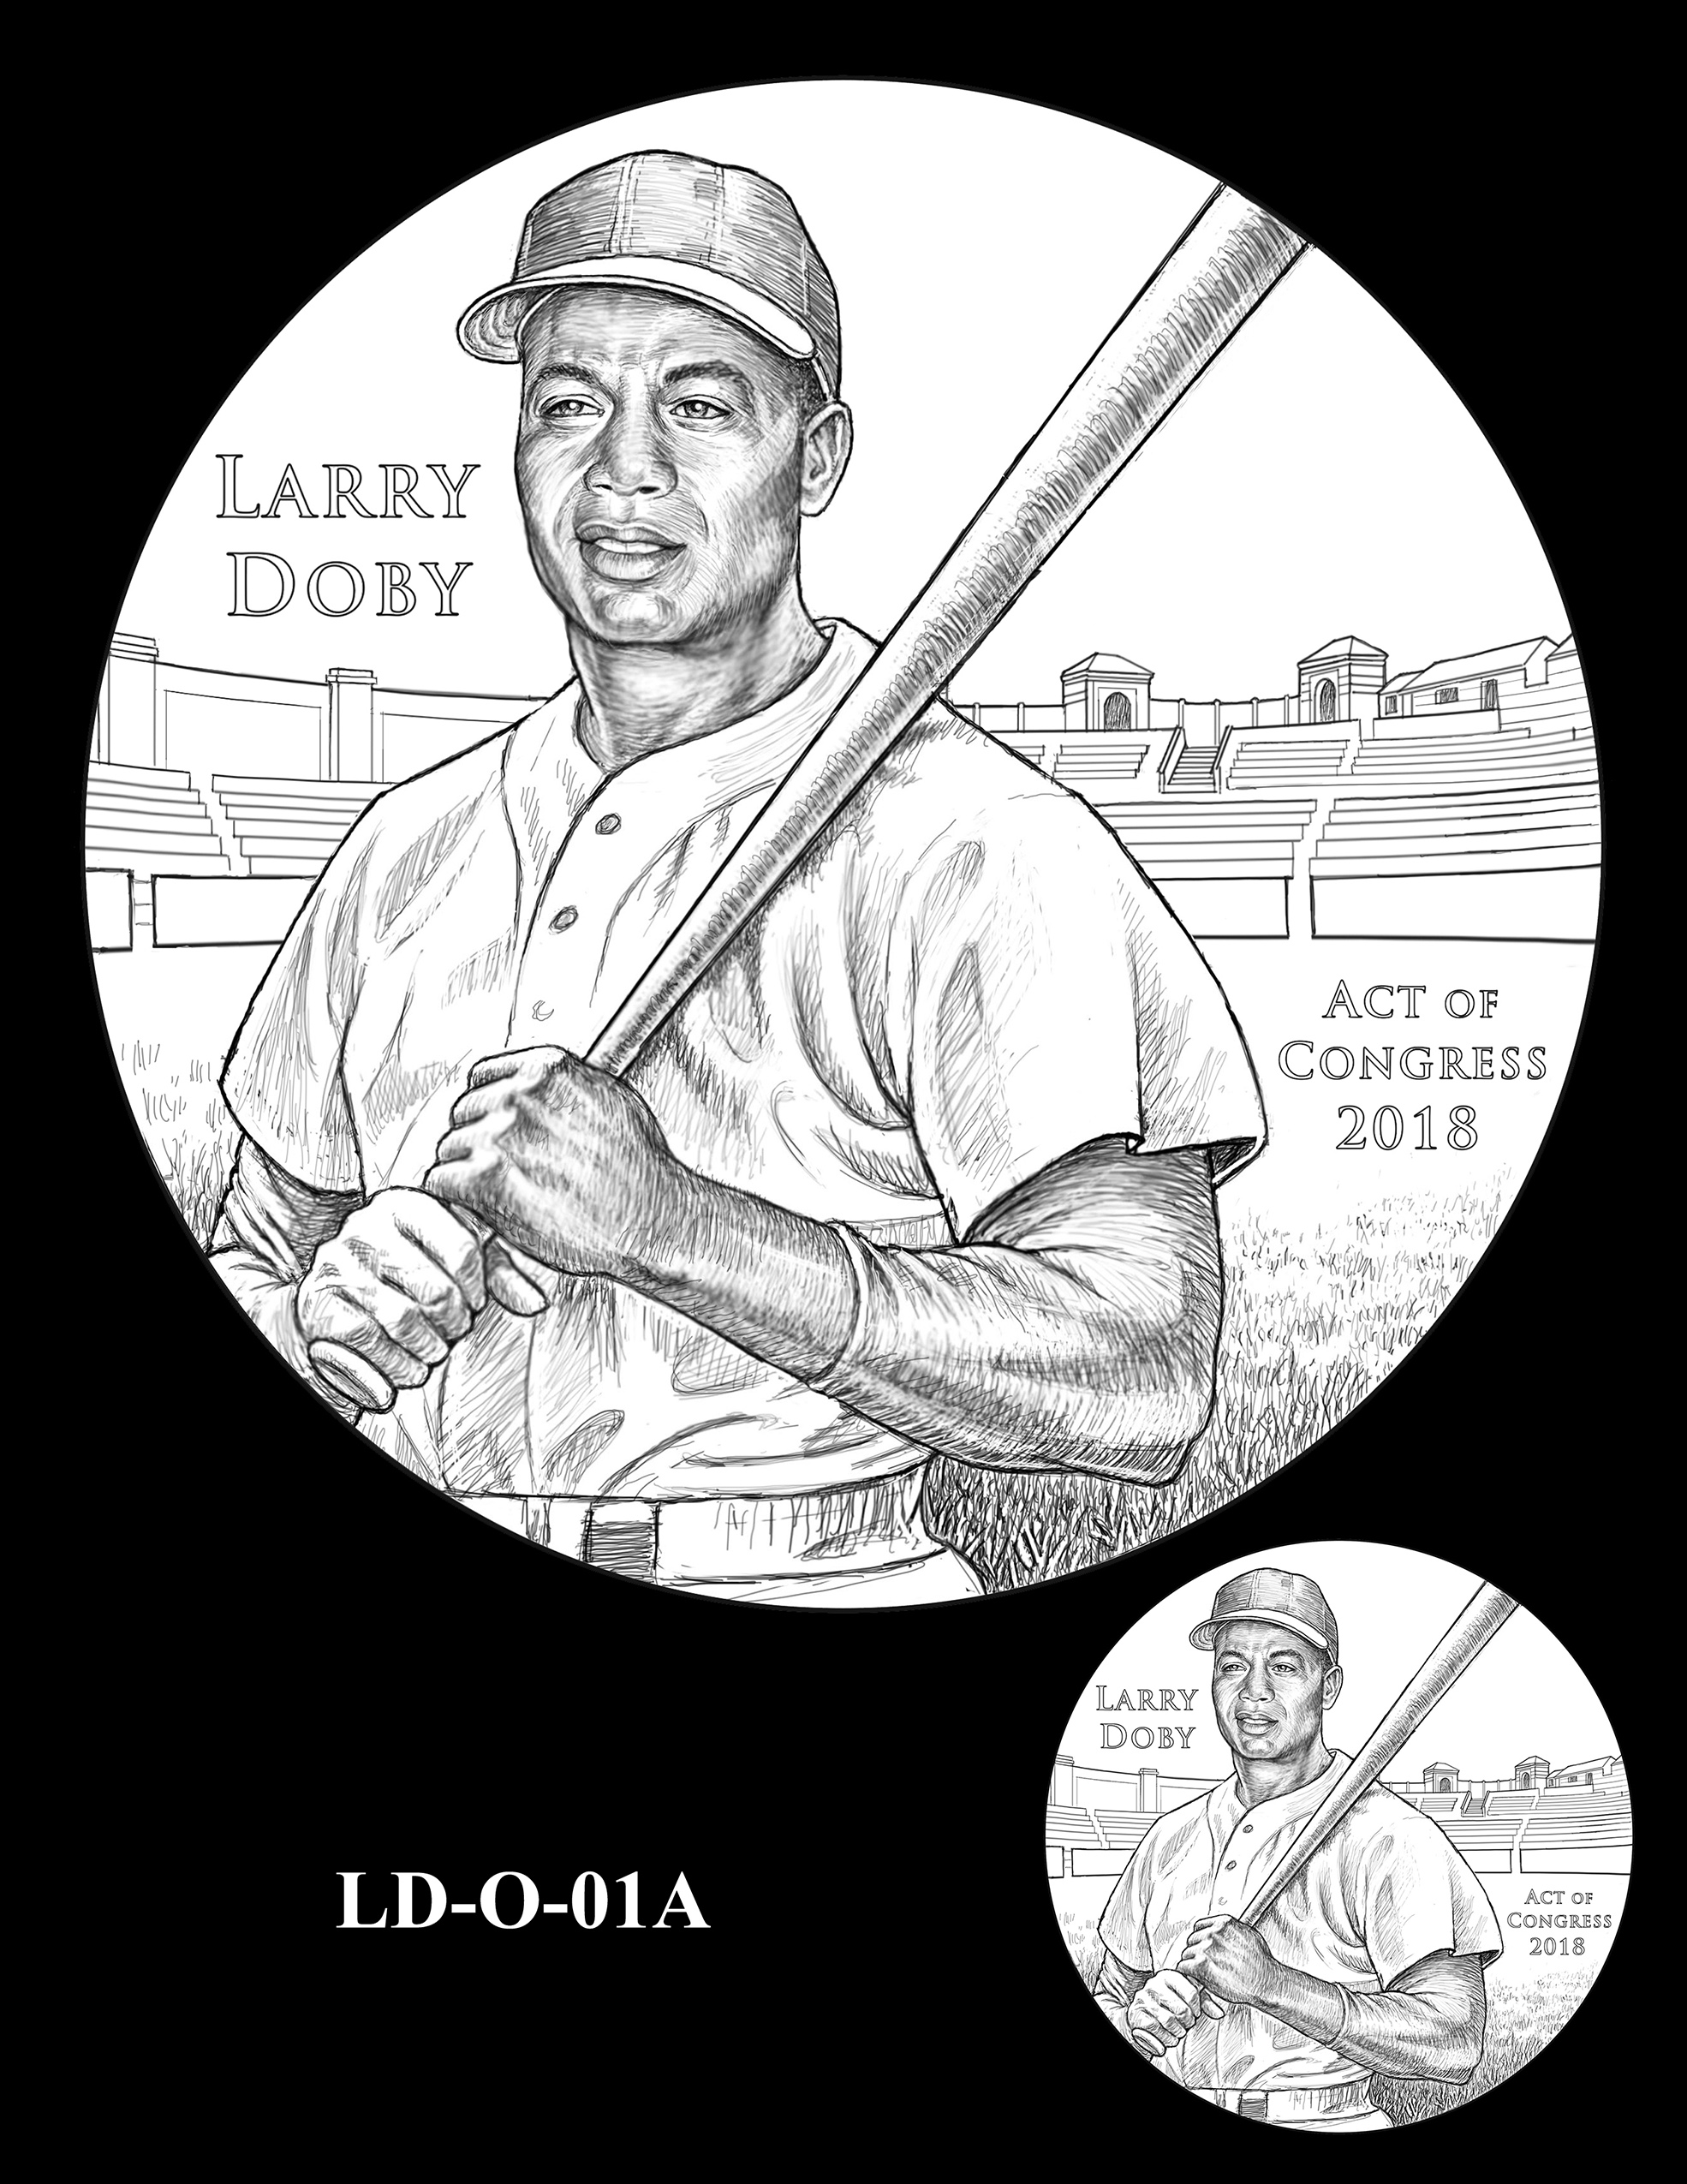 LD-O-01A -- Larry Doby Congressional Gold Medal